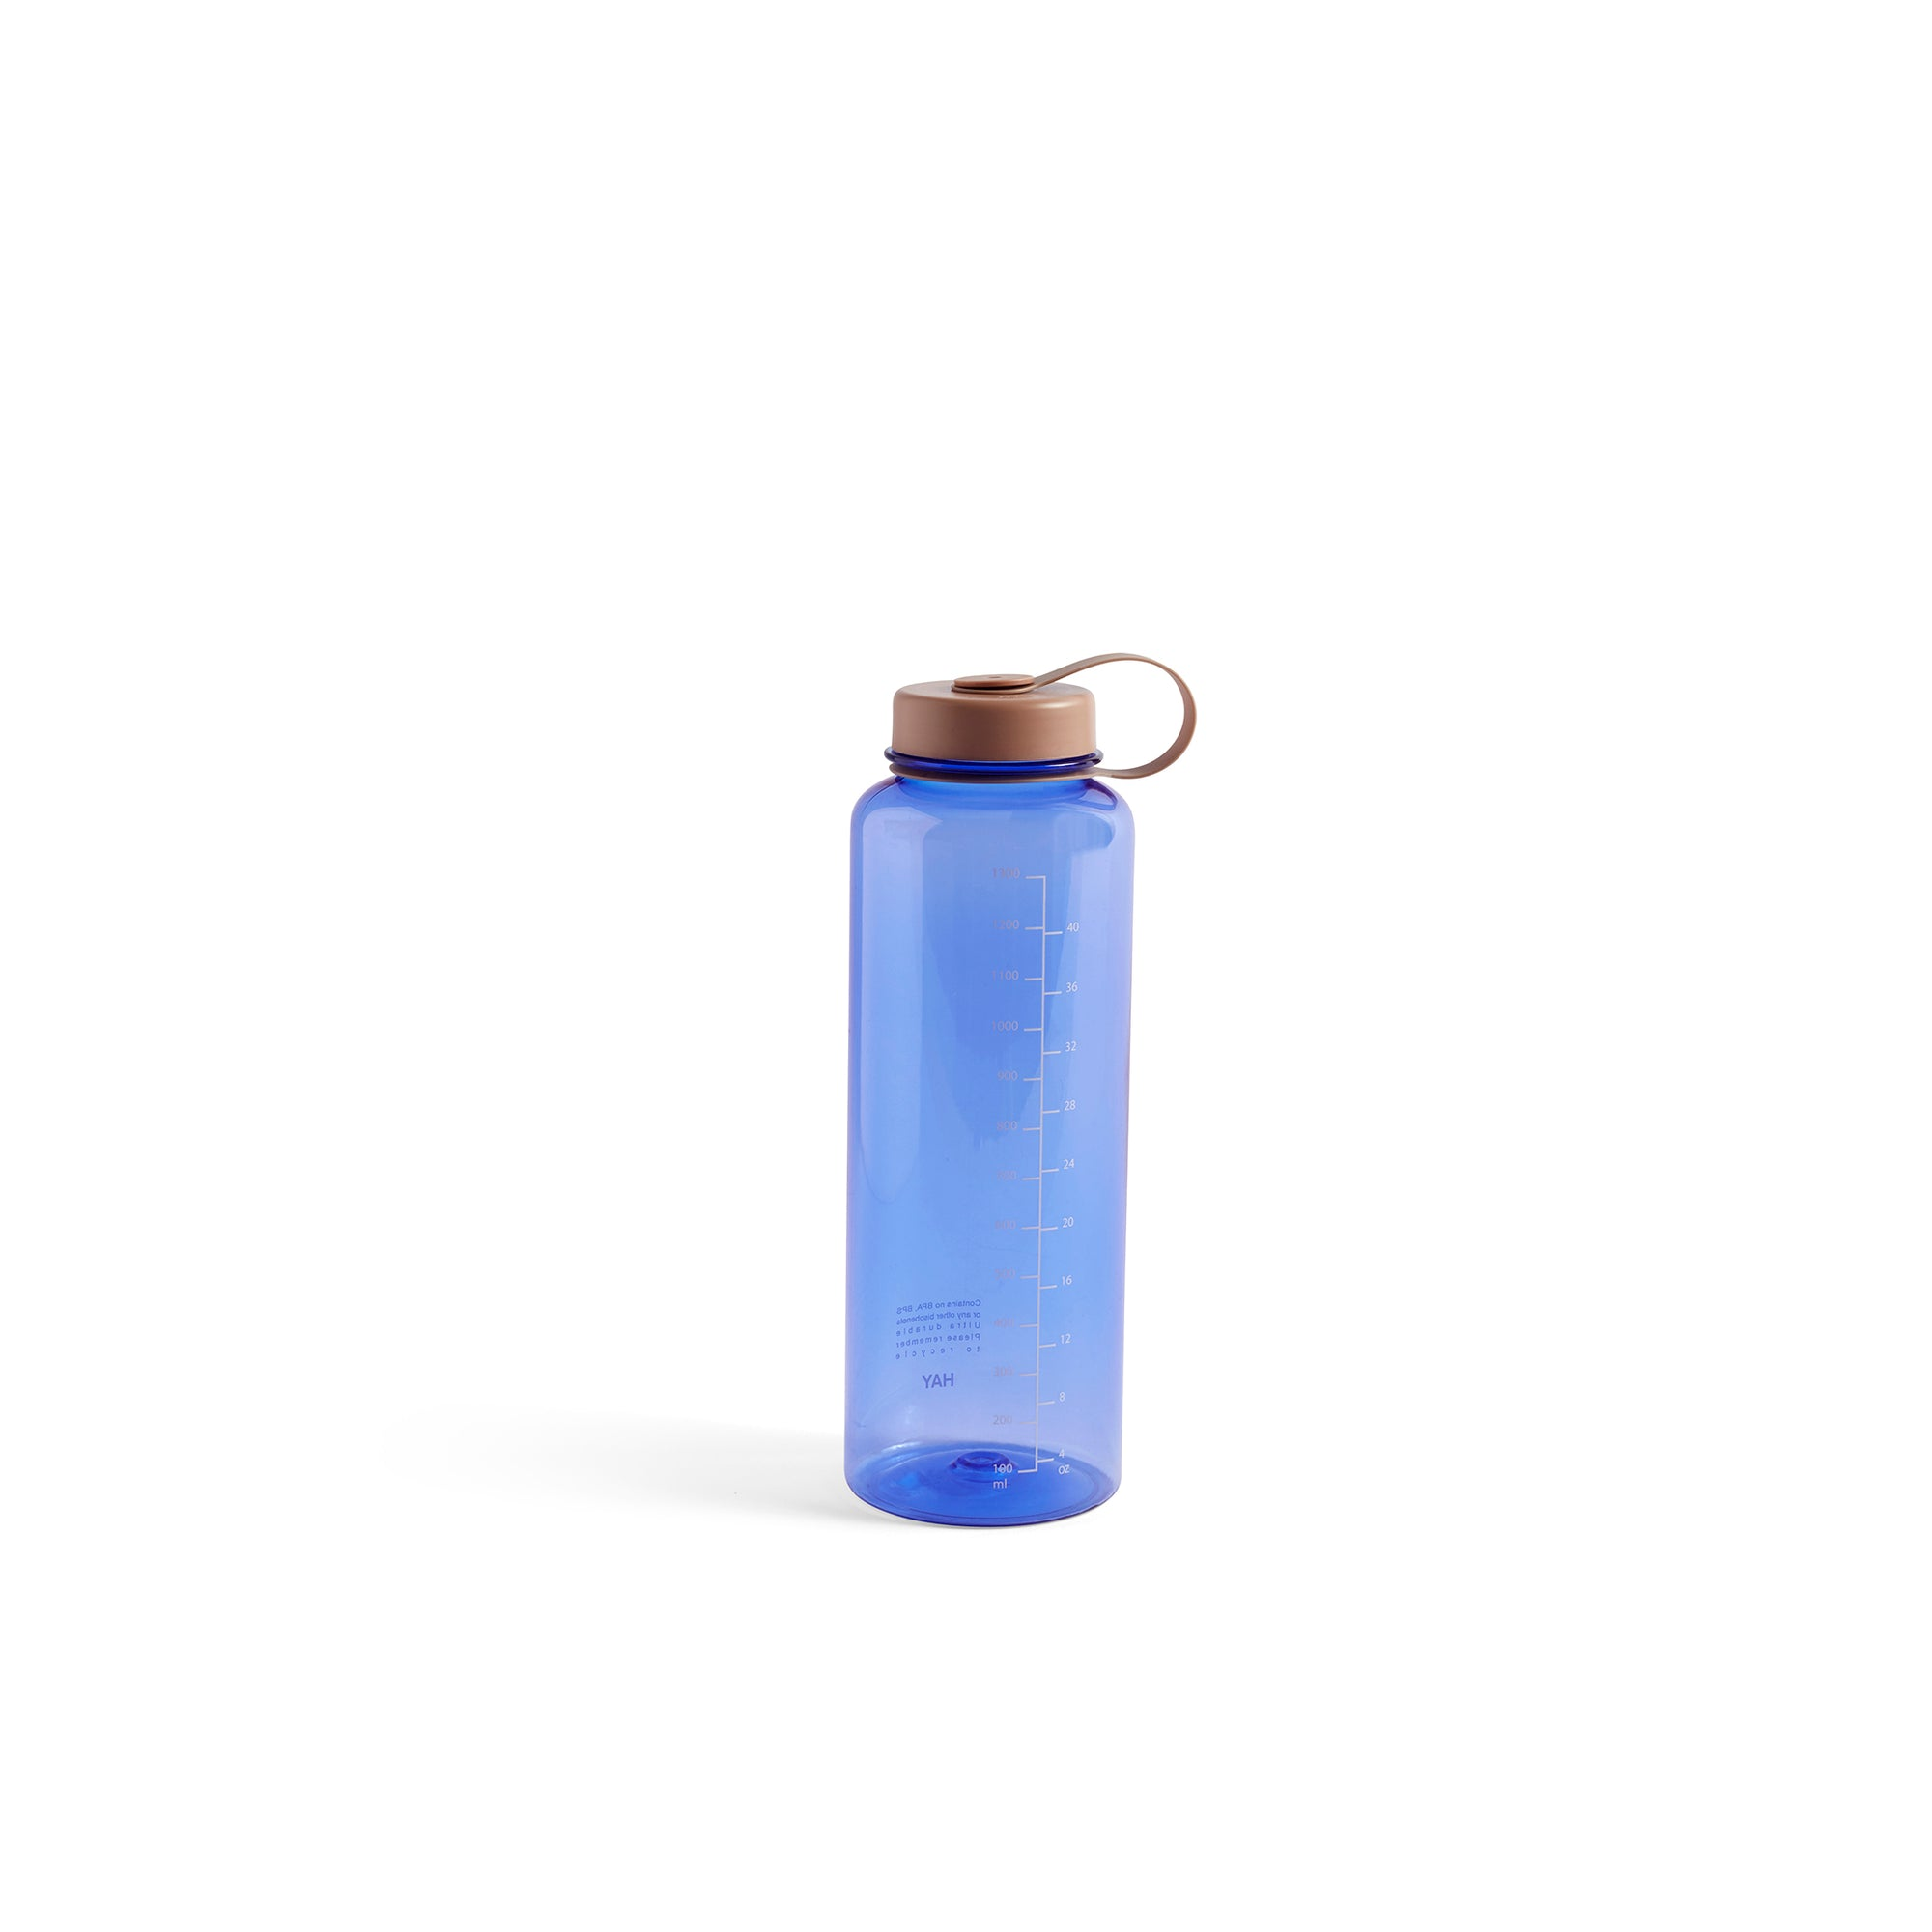 HAY Water Bottle 1.5L: Blue - The Union Project